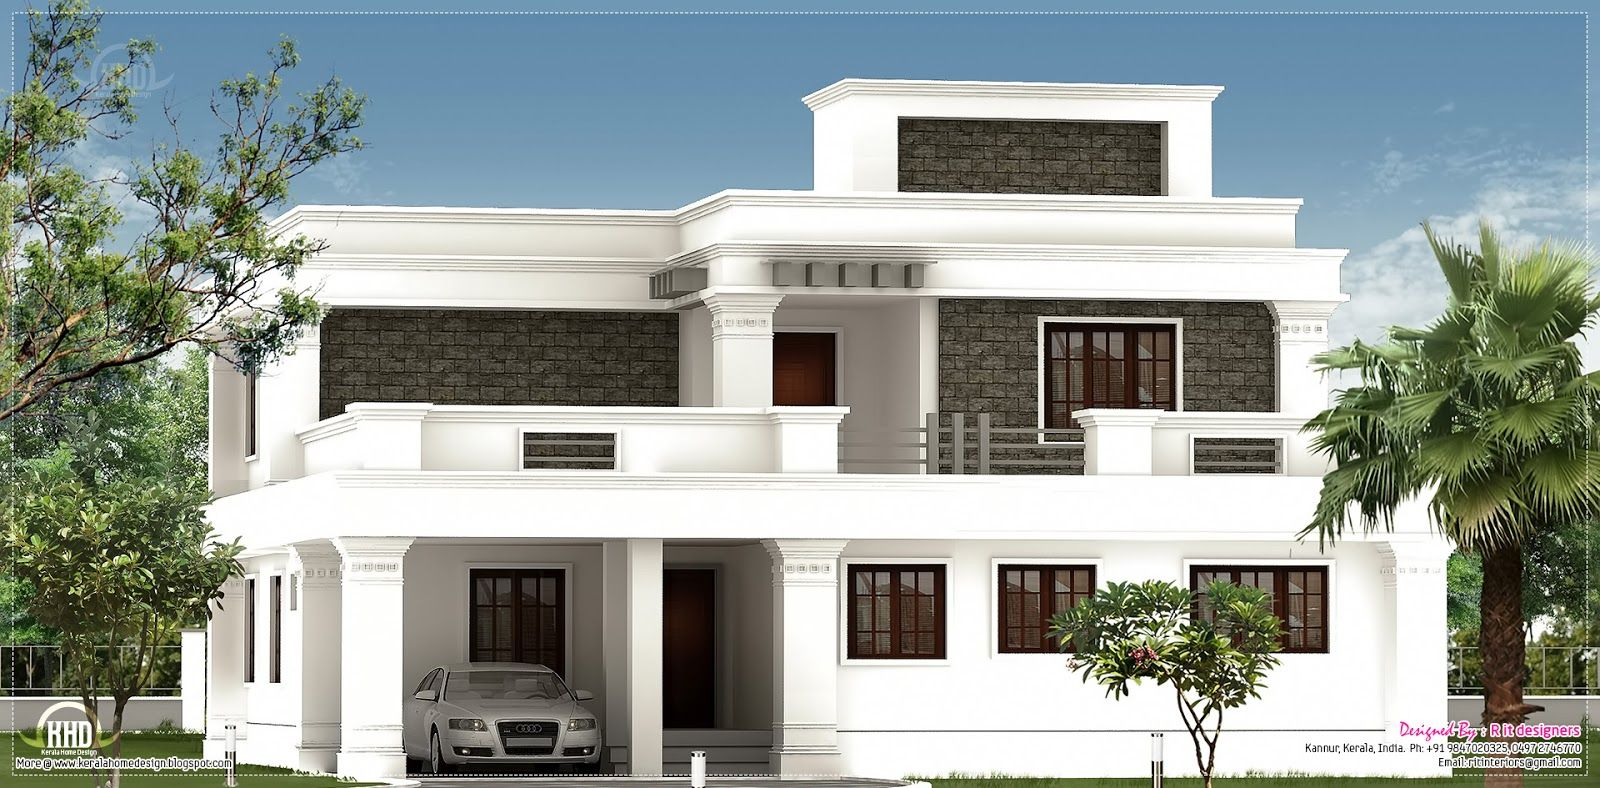 Flat roof homes designs flat roof villa exterior in 2400 for Home exterior design images